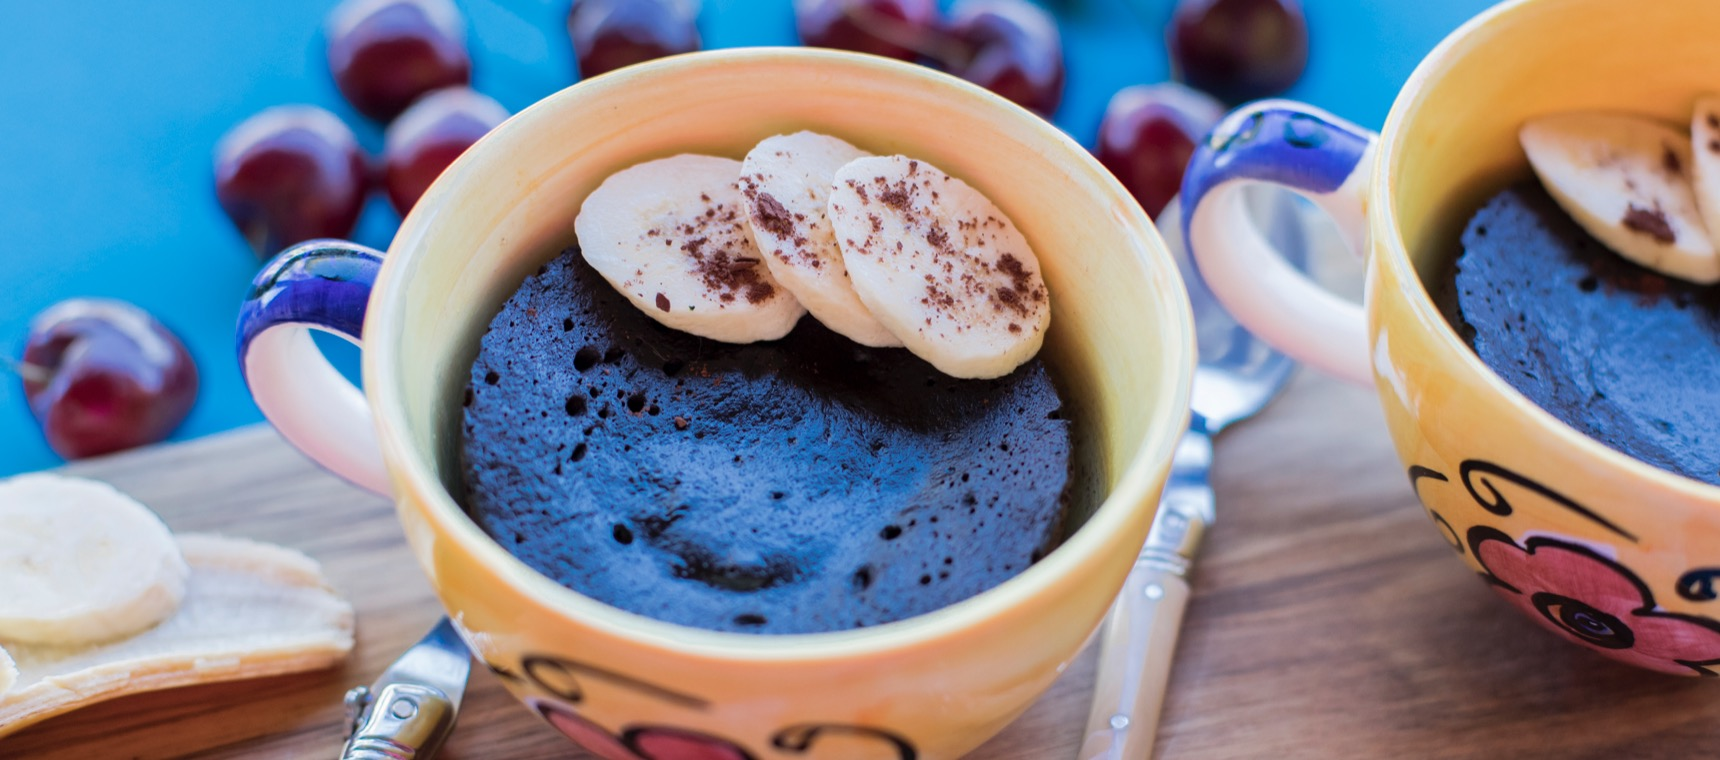 Healthy 4 Ingredient Chocolate Mug Cake